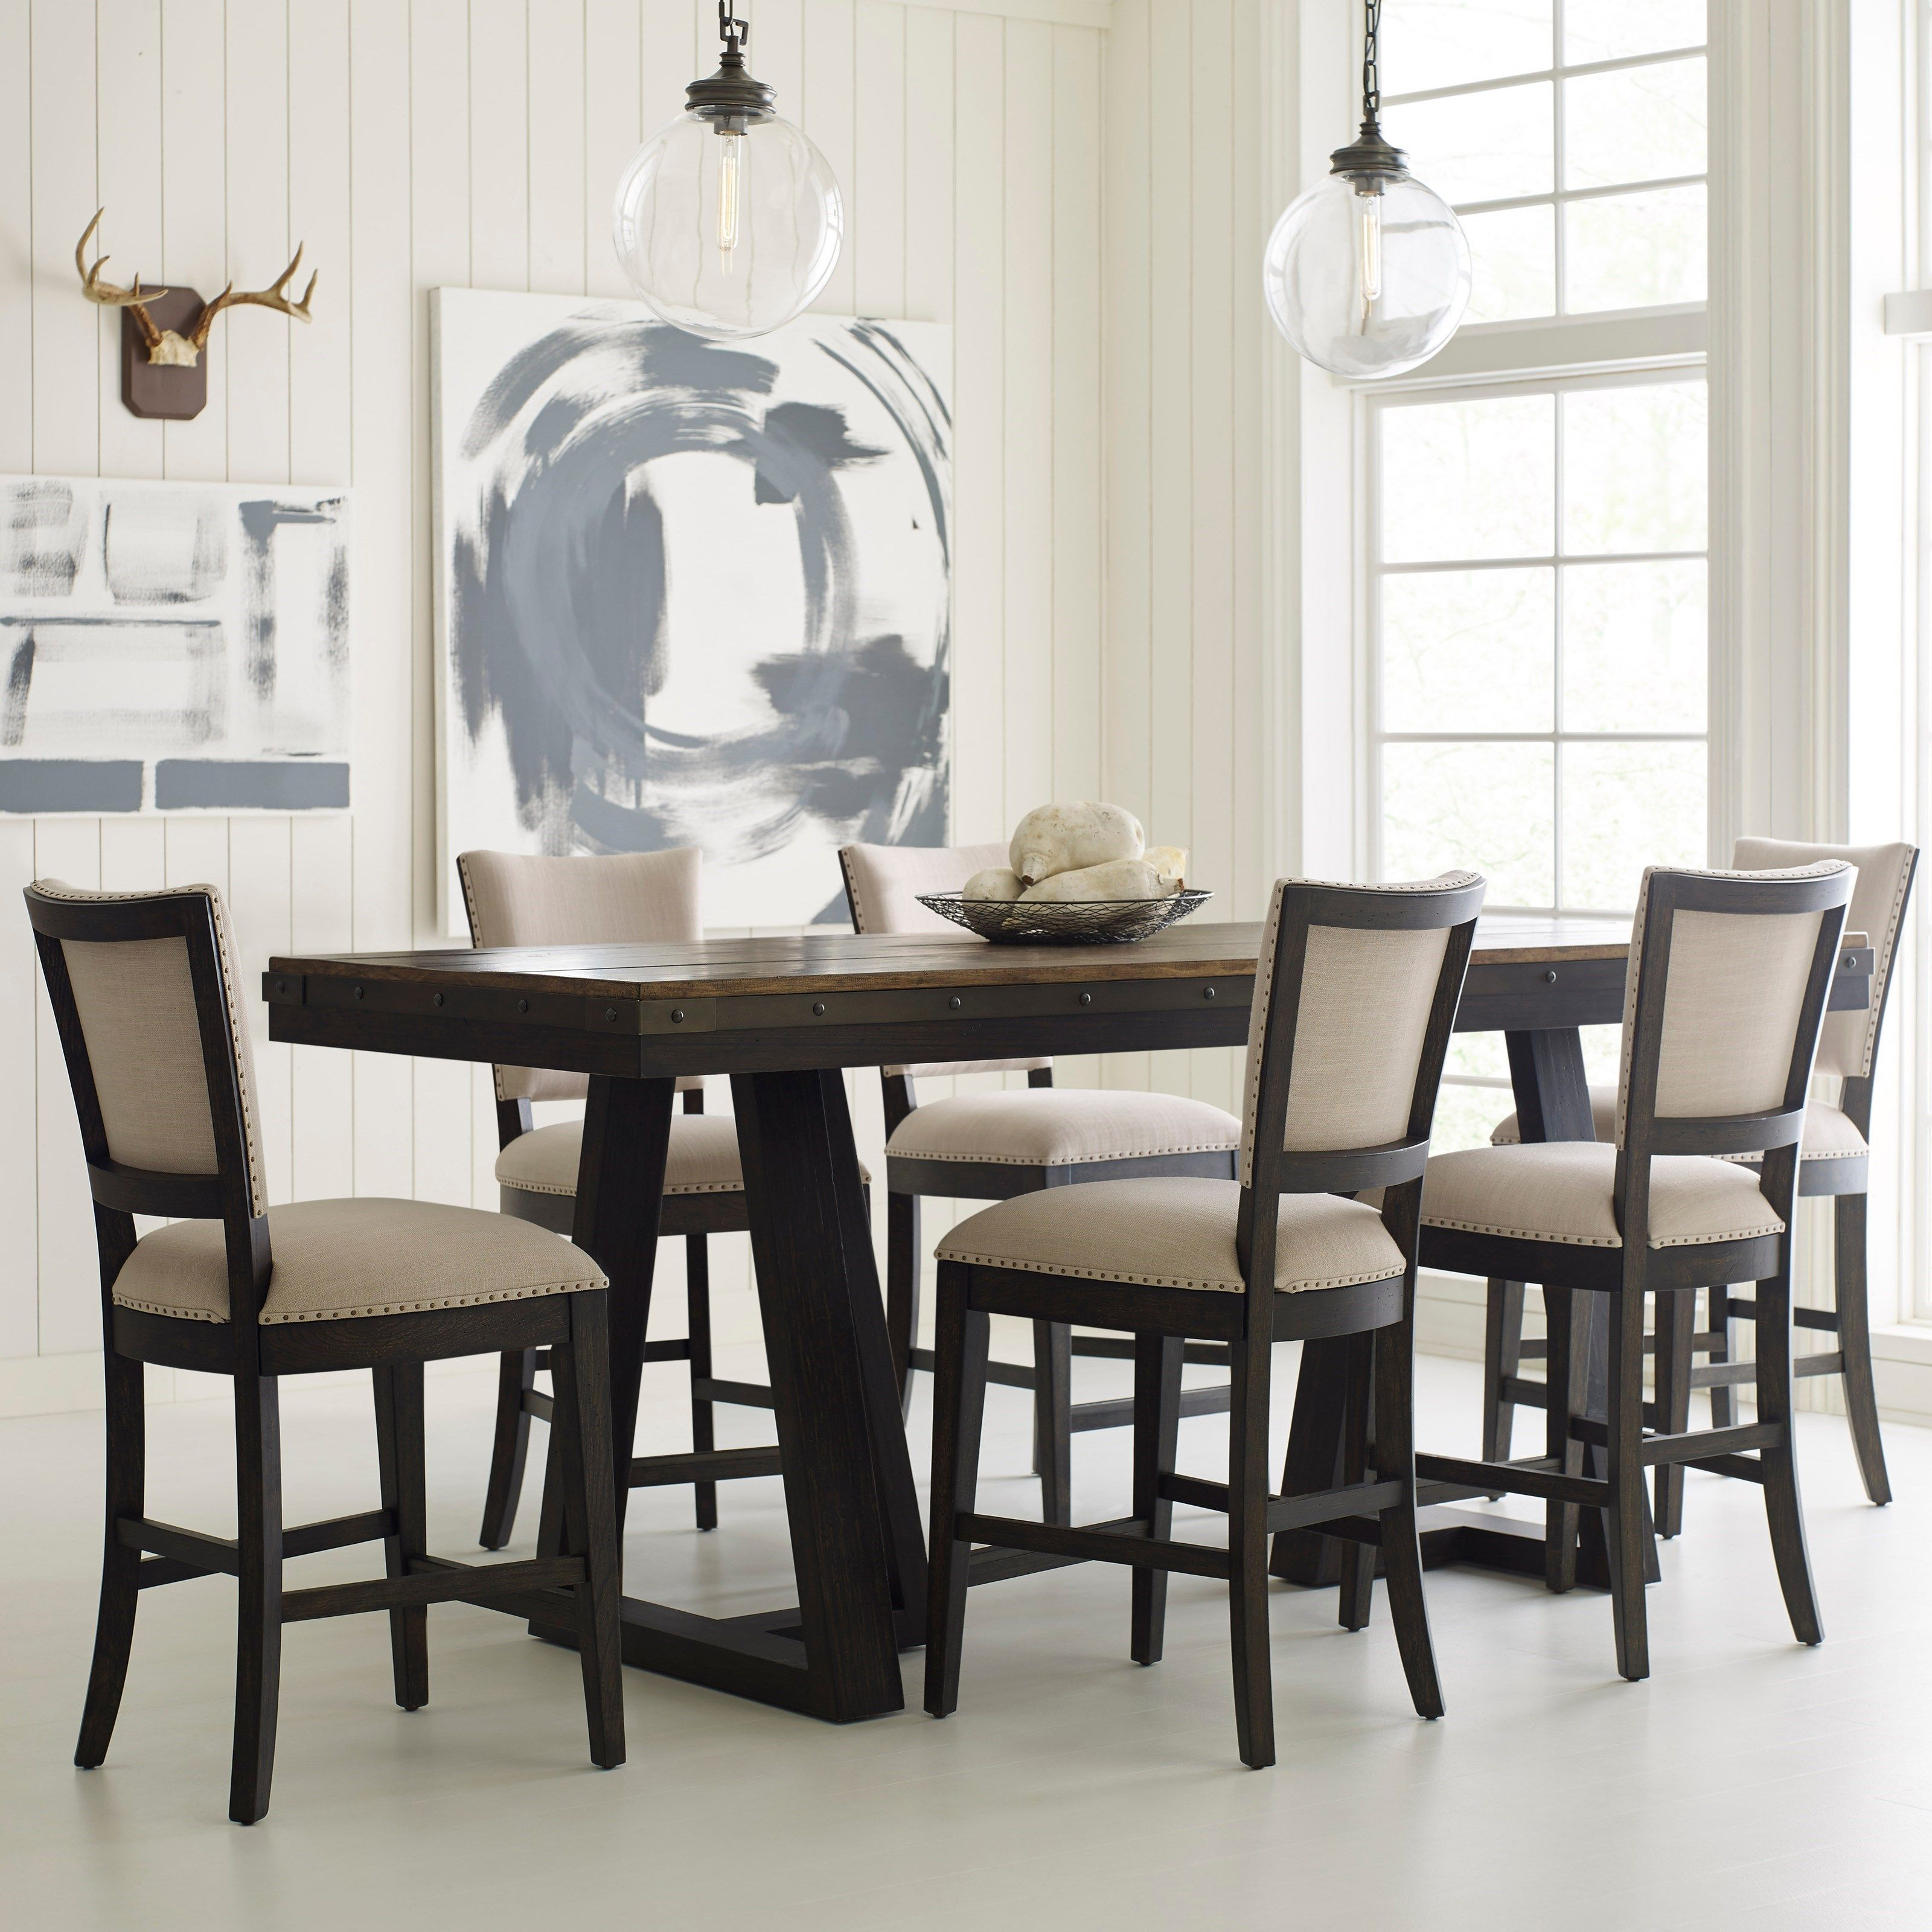 Plank Road 7 Pc Counter Height Dining Set by Kincaid Furniture